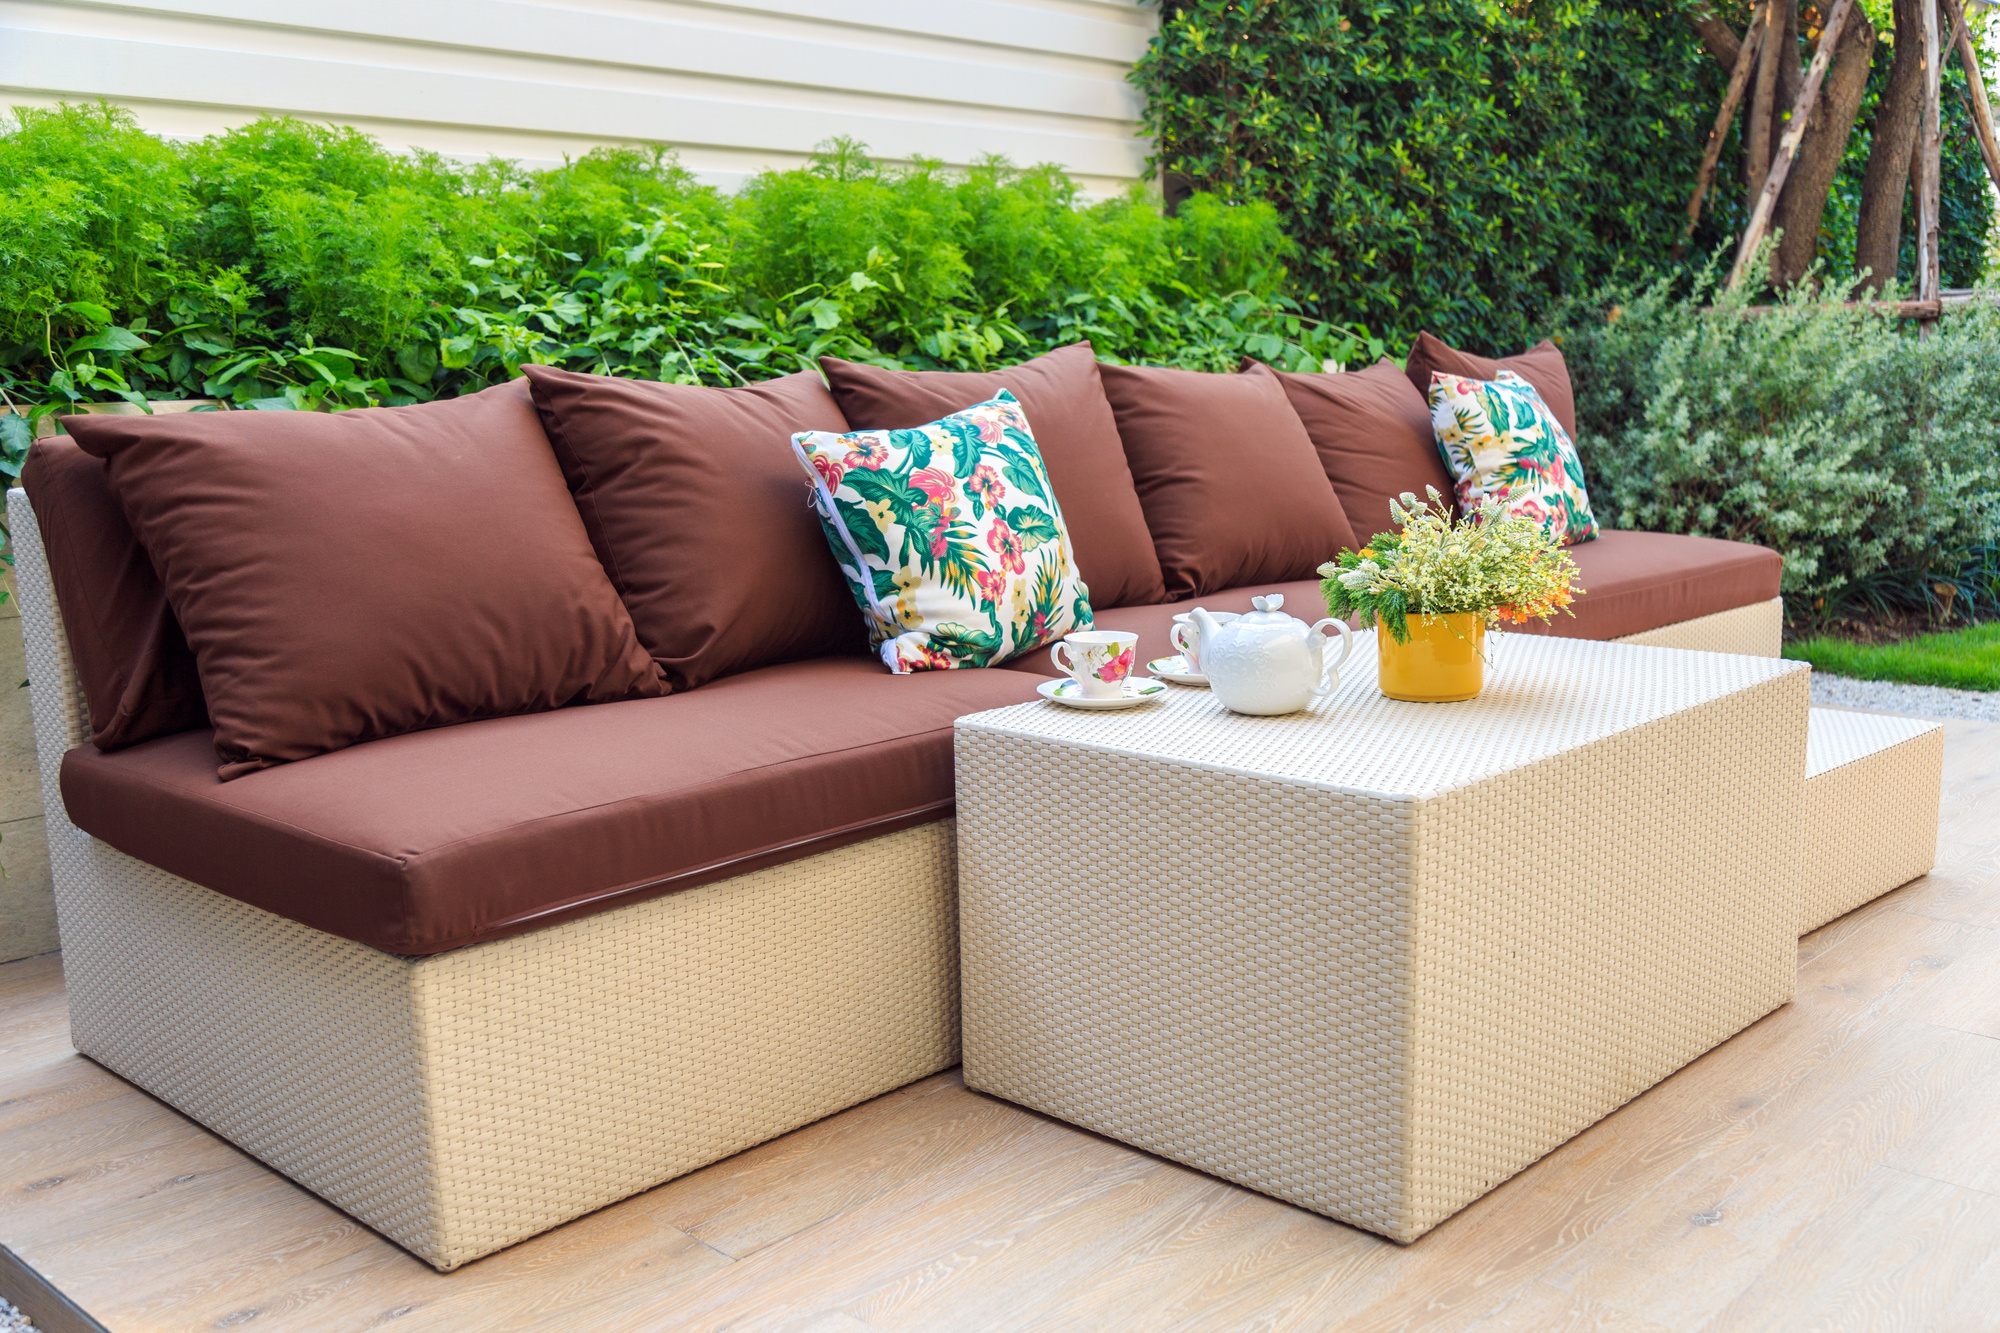 5 Easy Ways to Dress Up Your Outdoor Living Space This ... on Simple Outdoor Living id=56766